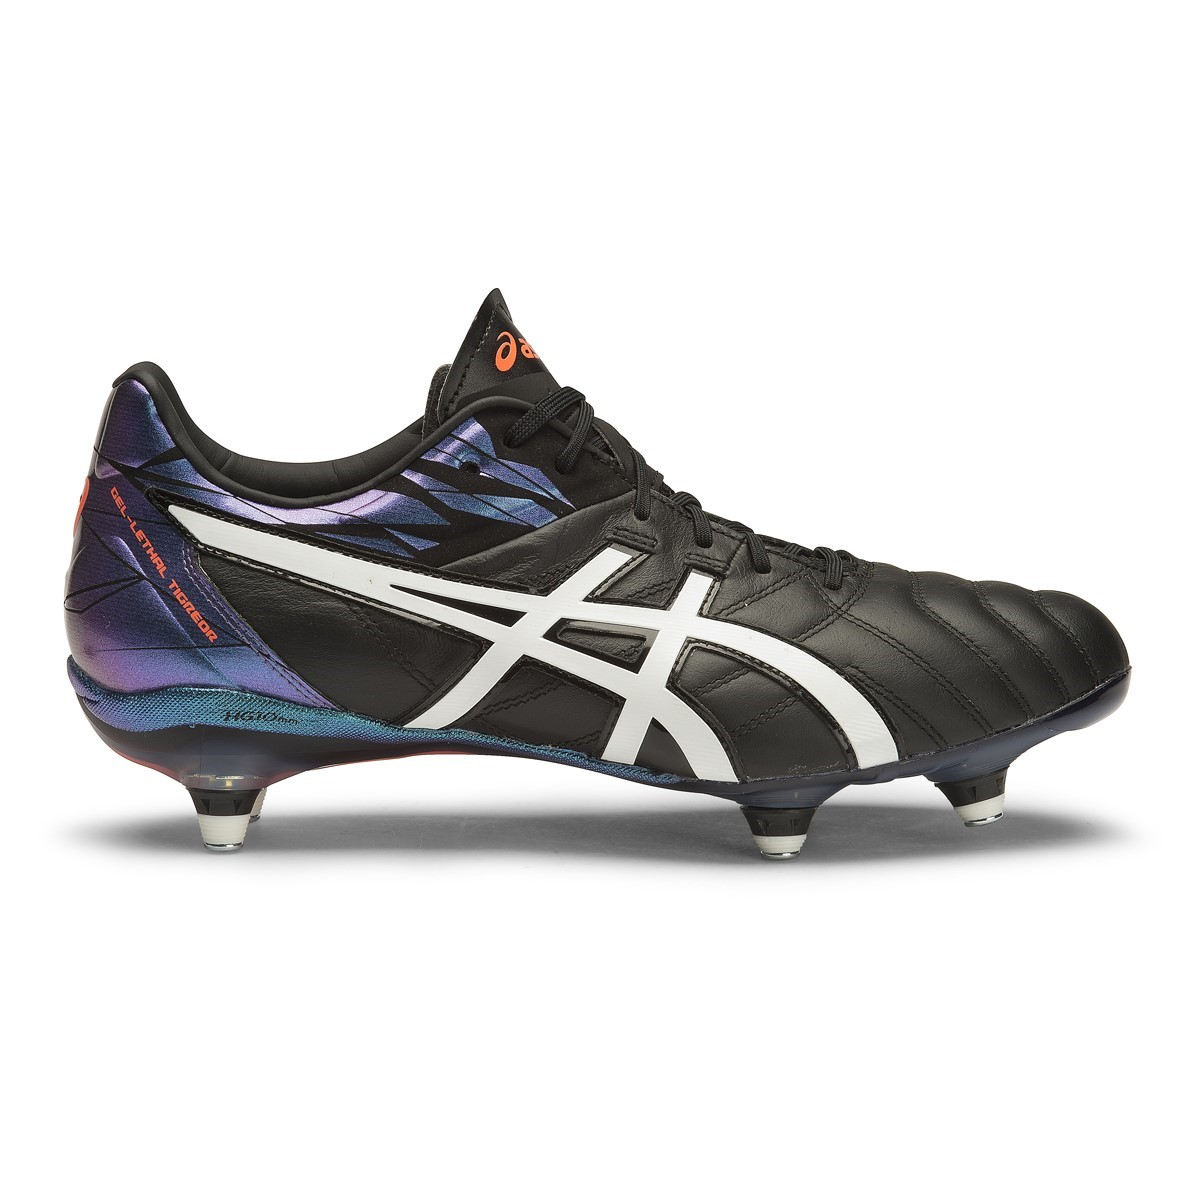 19d02106d4e7b Asics Gel Lethal Tigreor 9 ST - Mens Football Boots - Black White Flash .